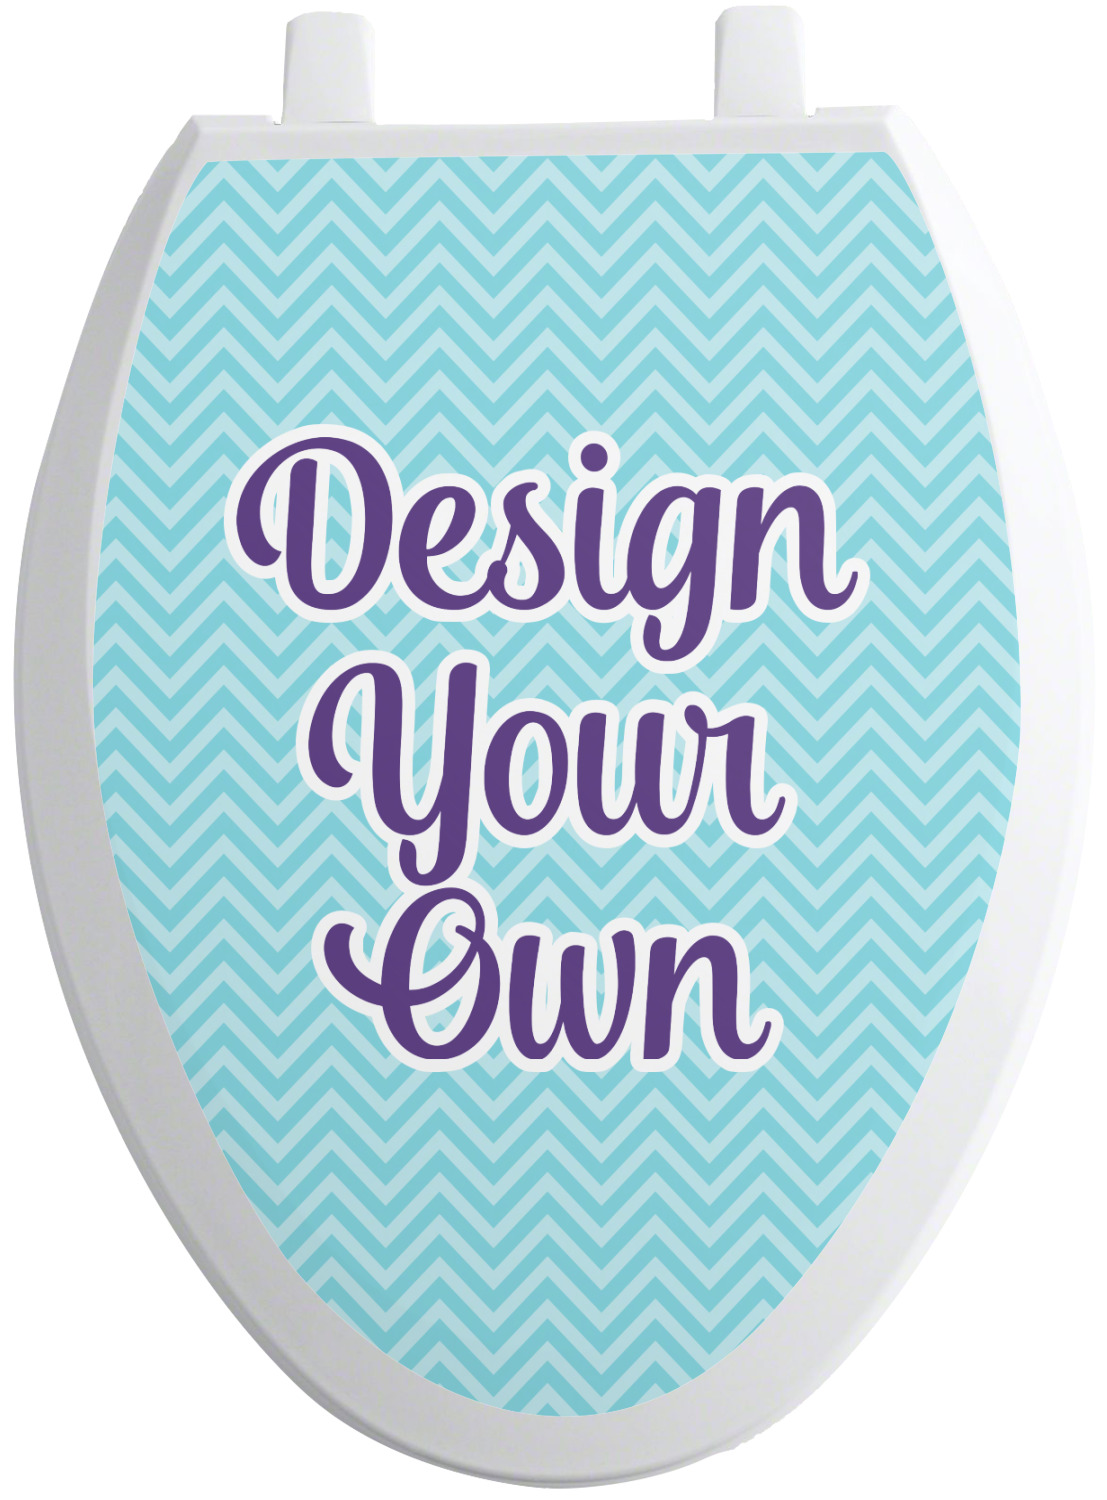 Design Your Own Toilet Seat Decal Personalized Youcustomizeit